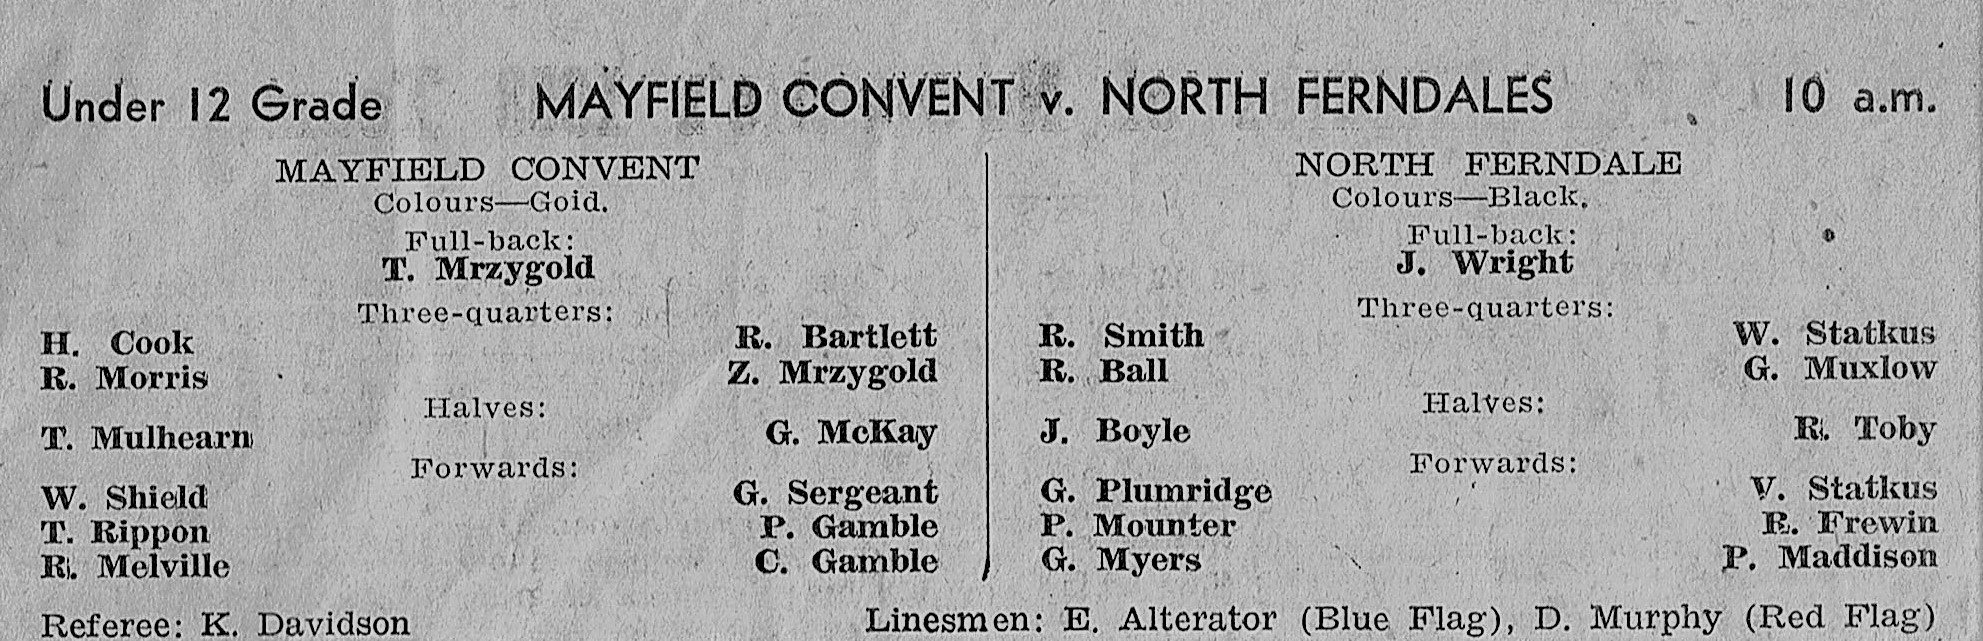 Mayfield Convent vs North Ferndales.